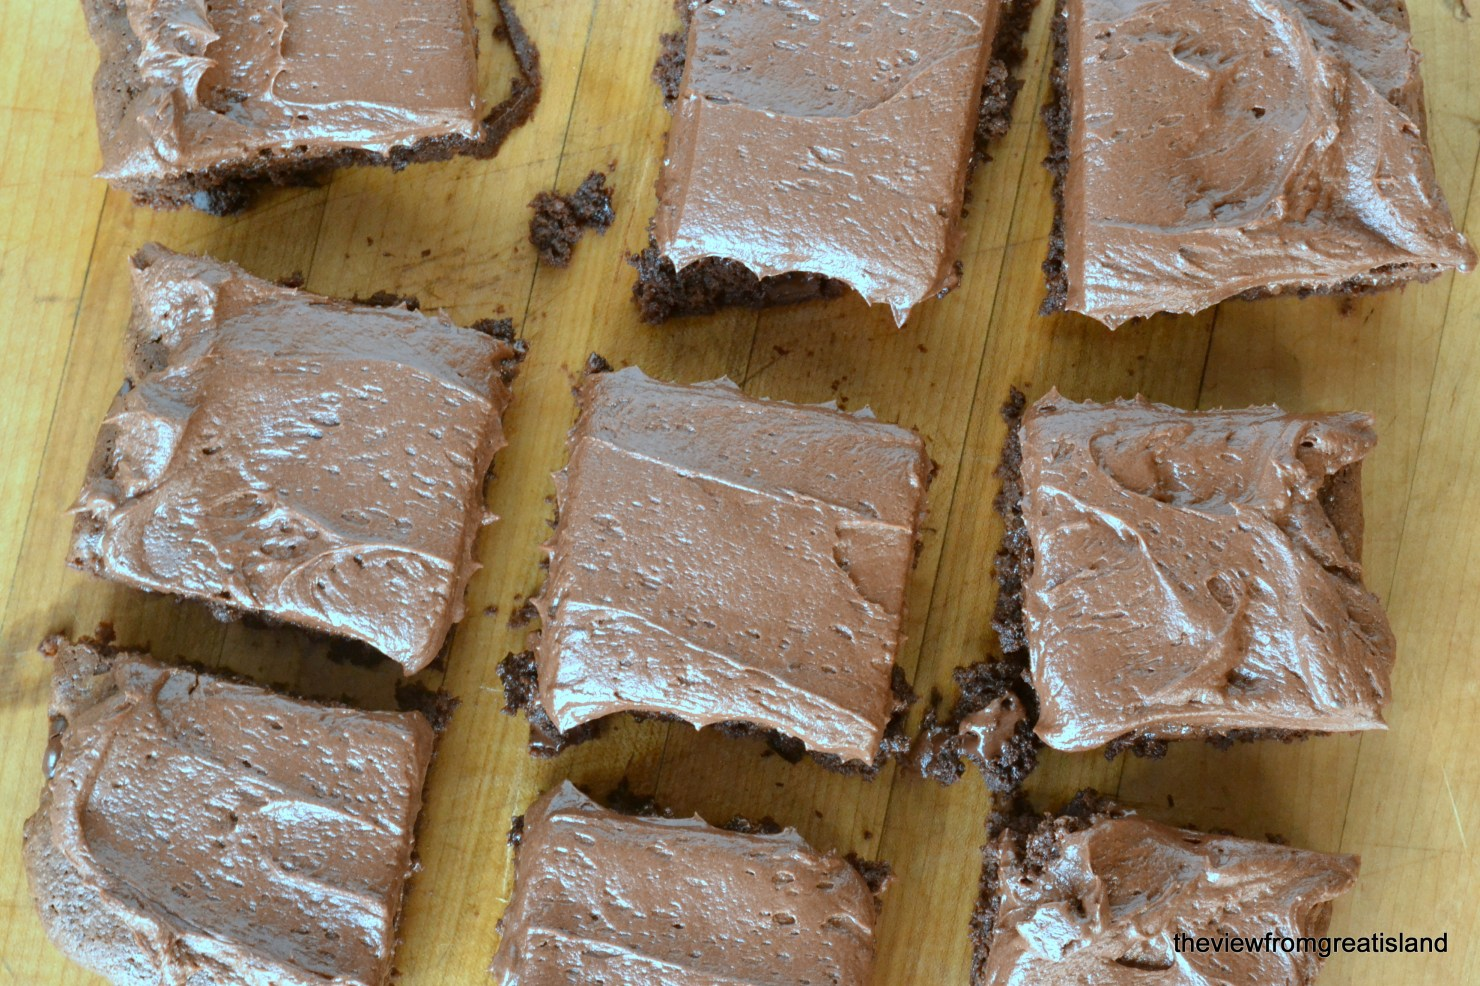 Chocolate Fudge Brownies with Chocolate Buttercream, cut into squares